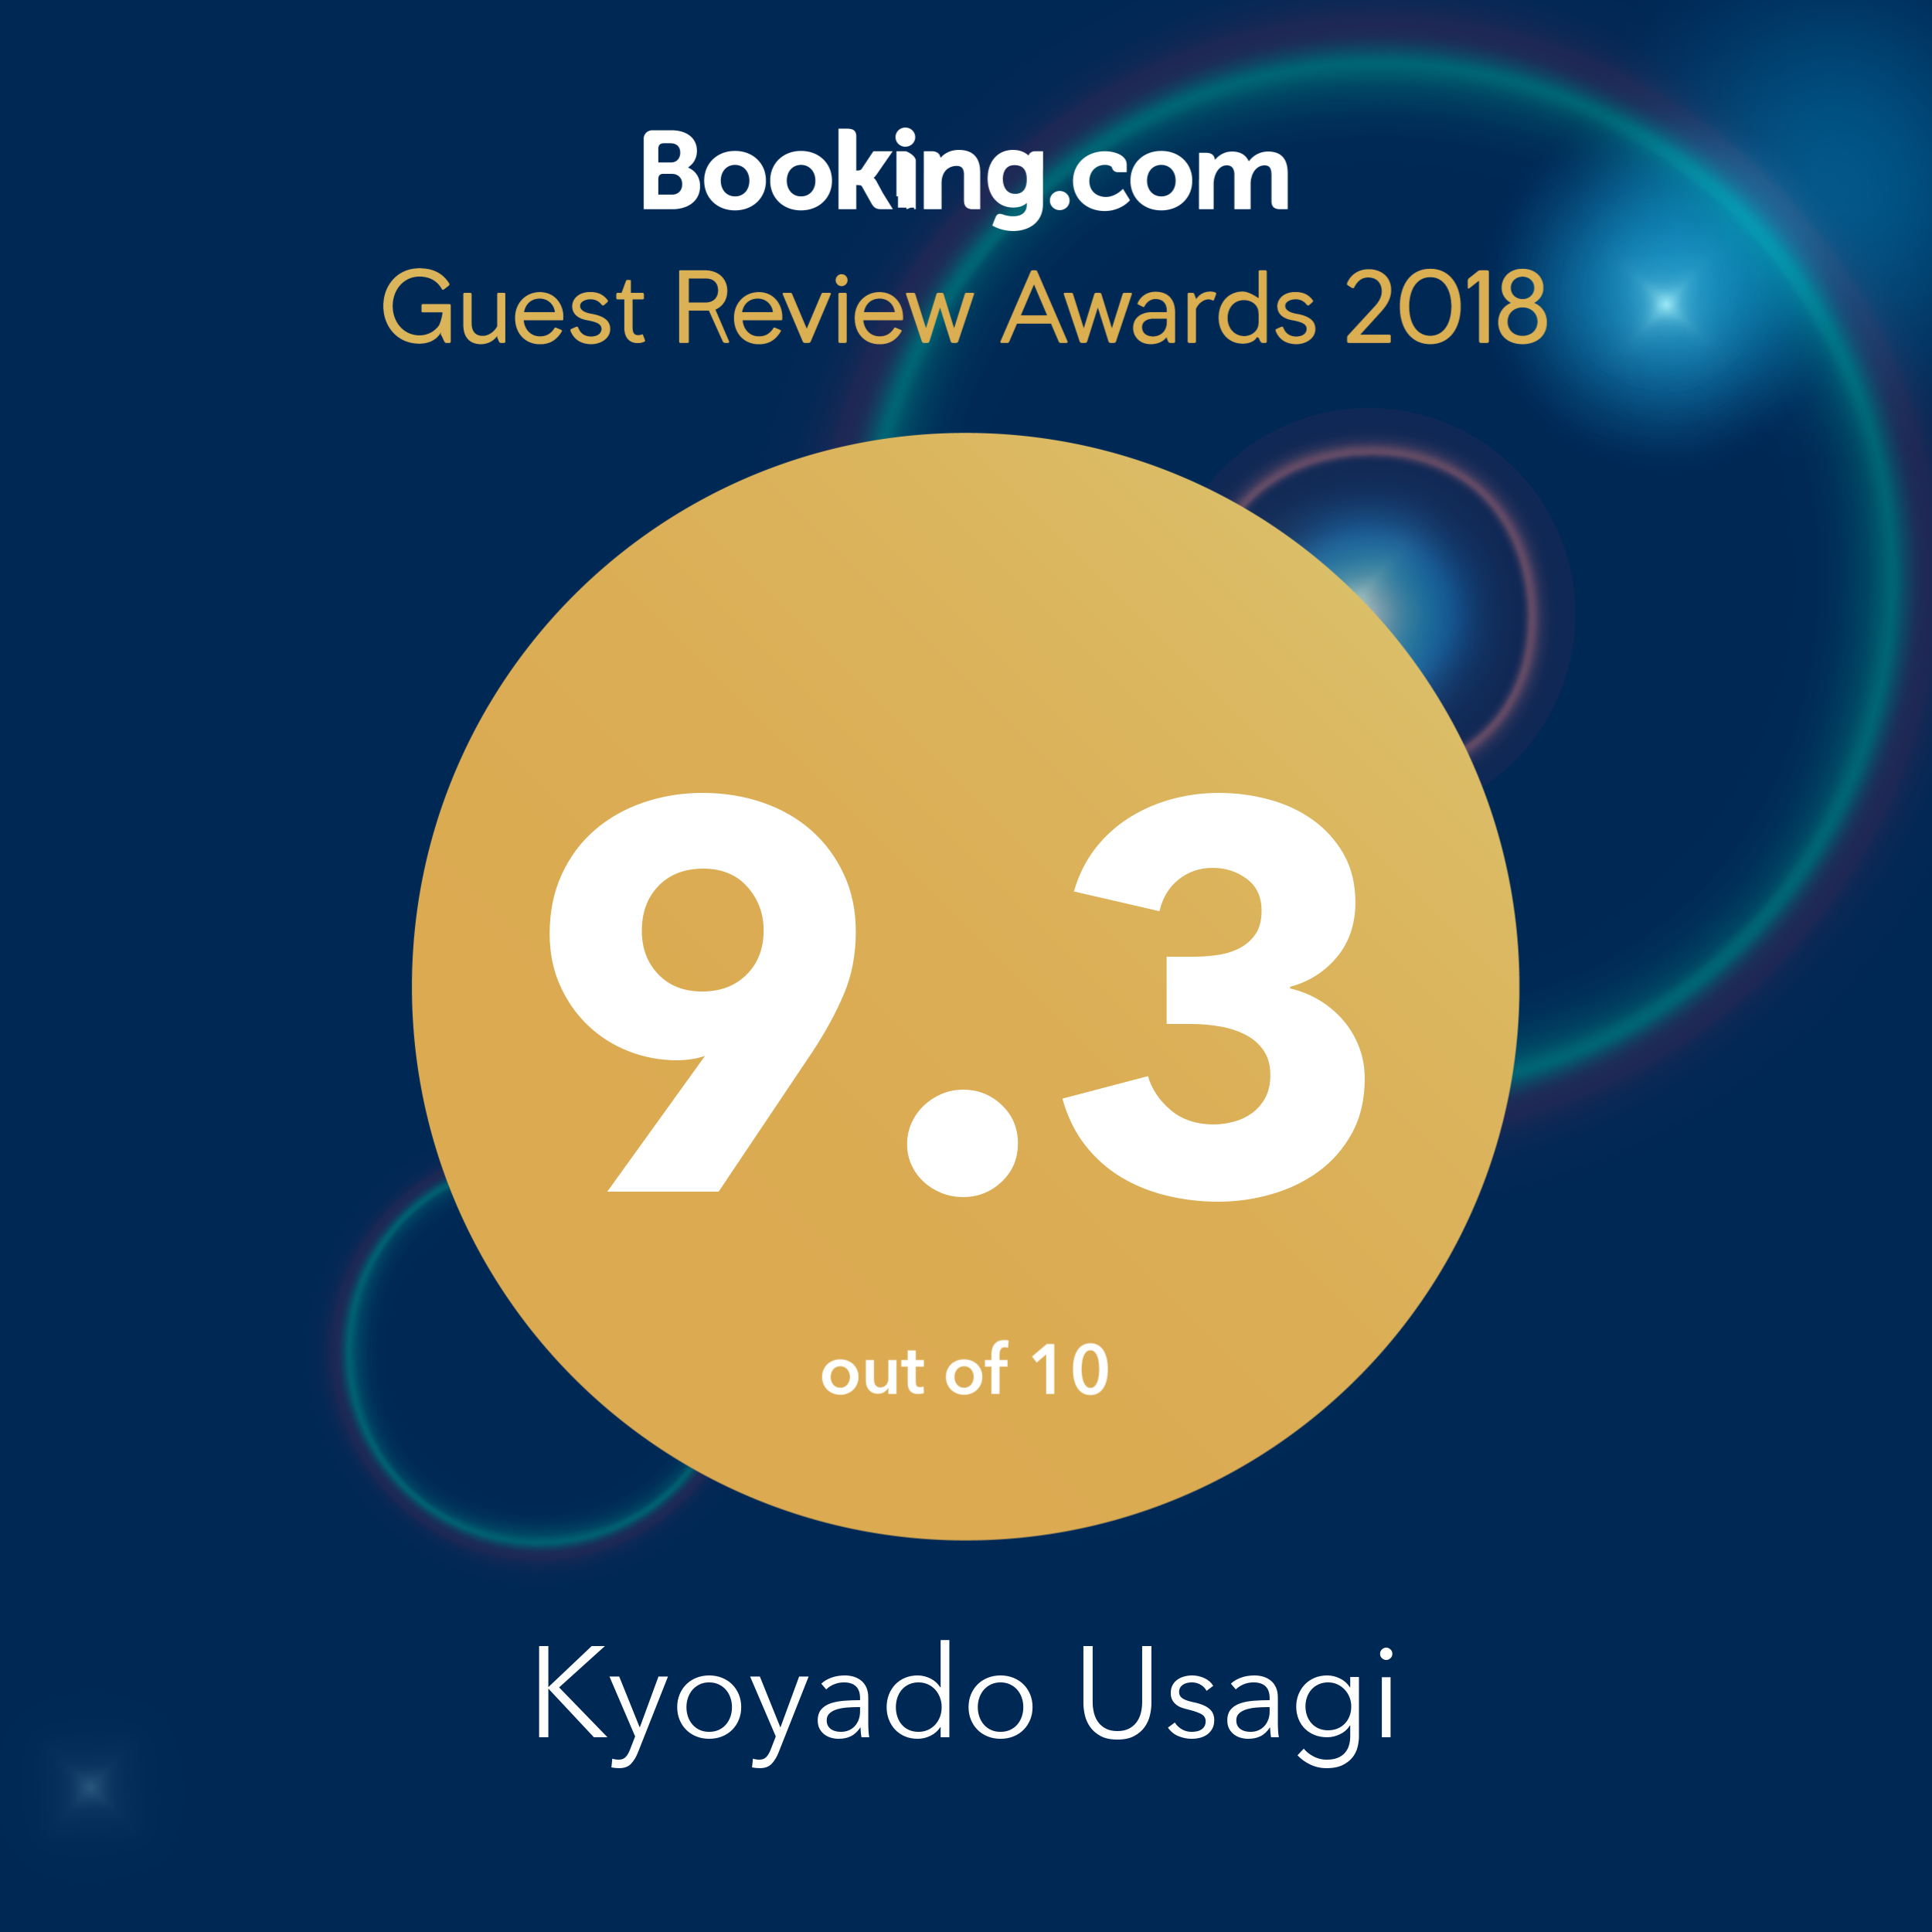 https://www.usagi-yado.com/blog/assets_c/Booking.com%20Awards2018%20%20print.png